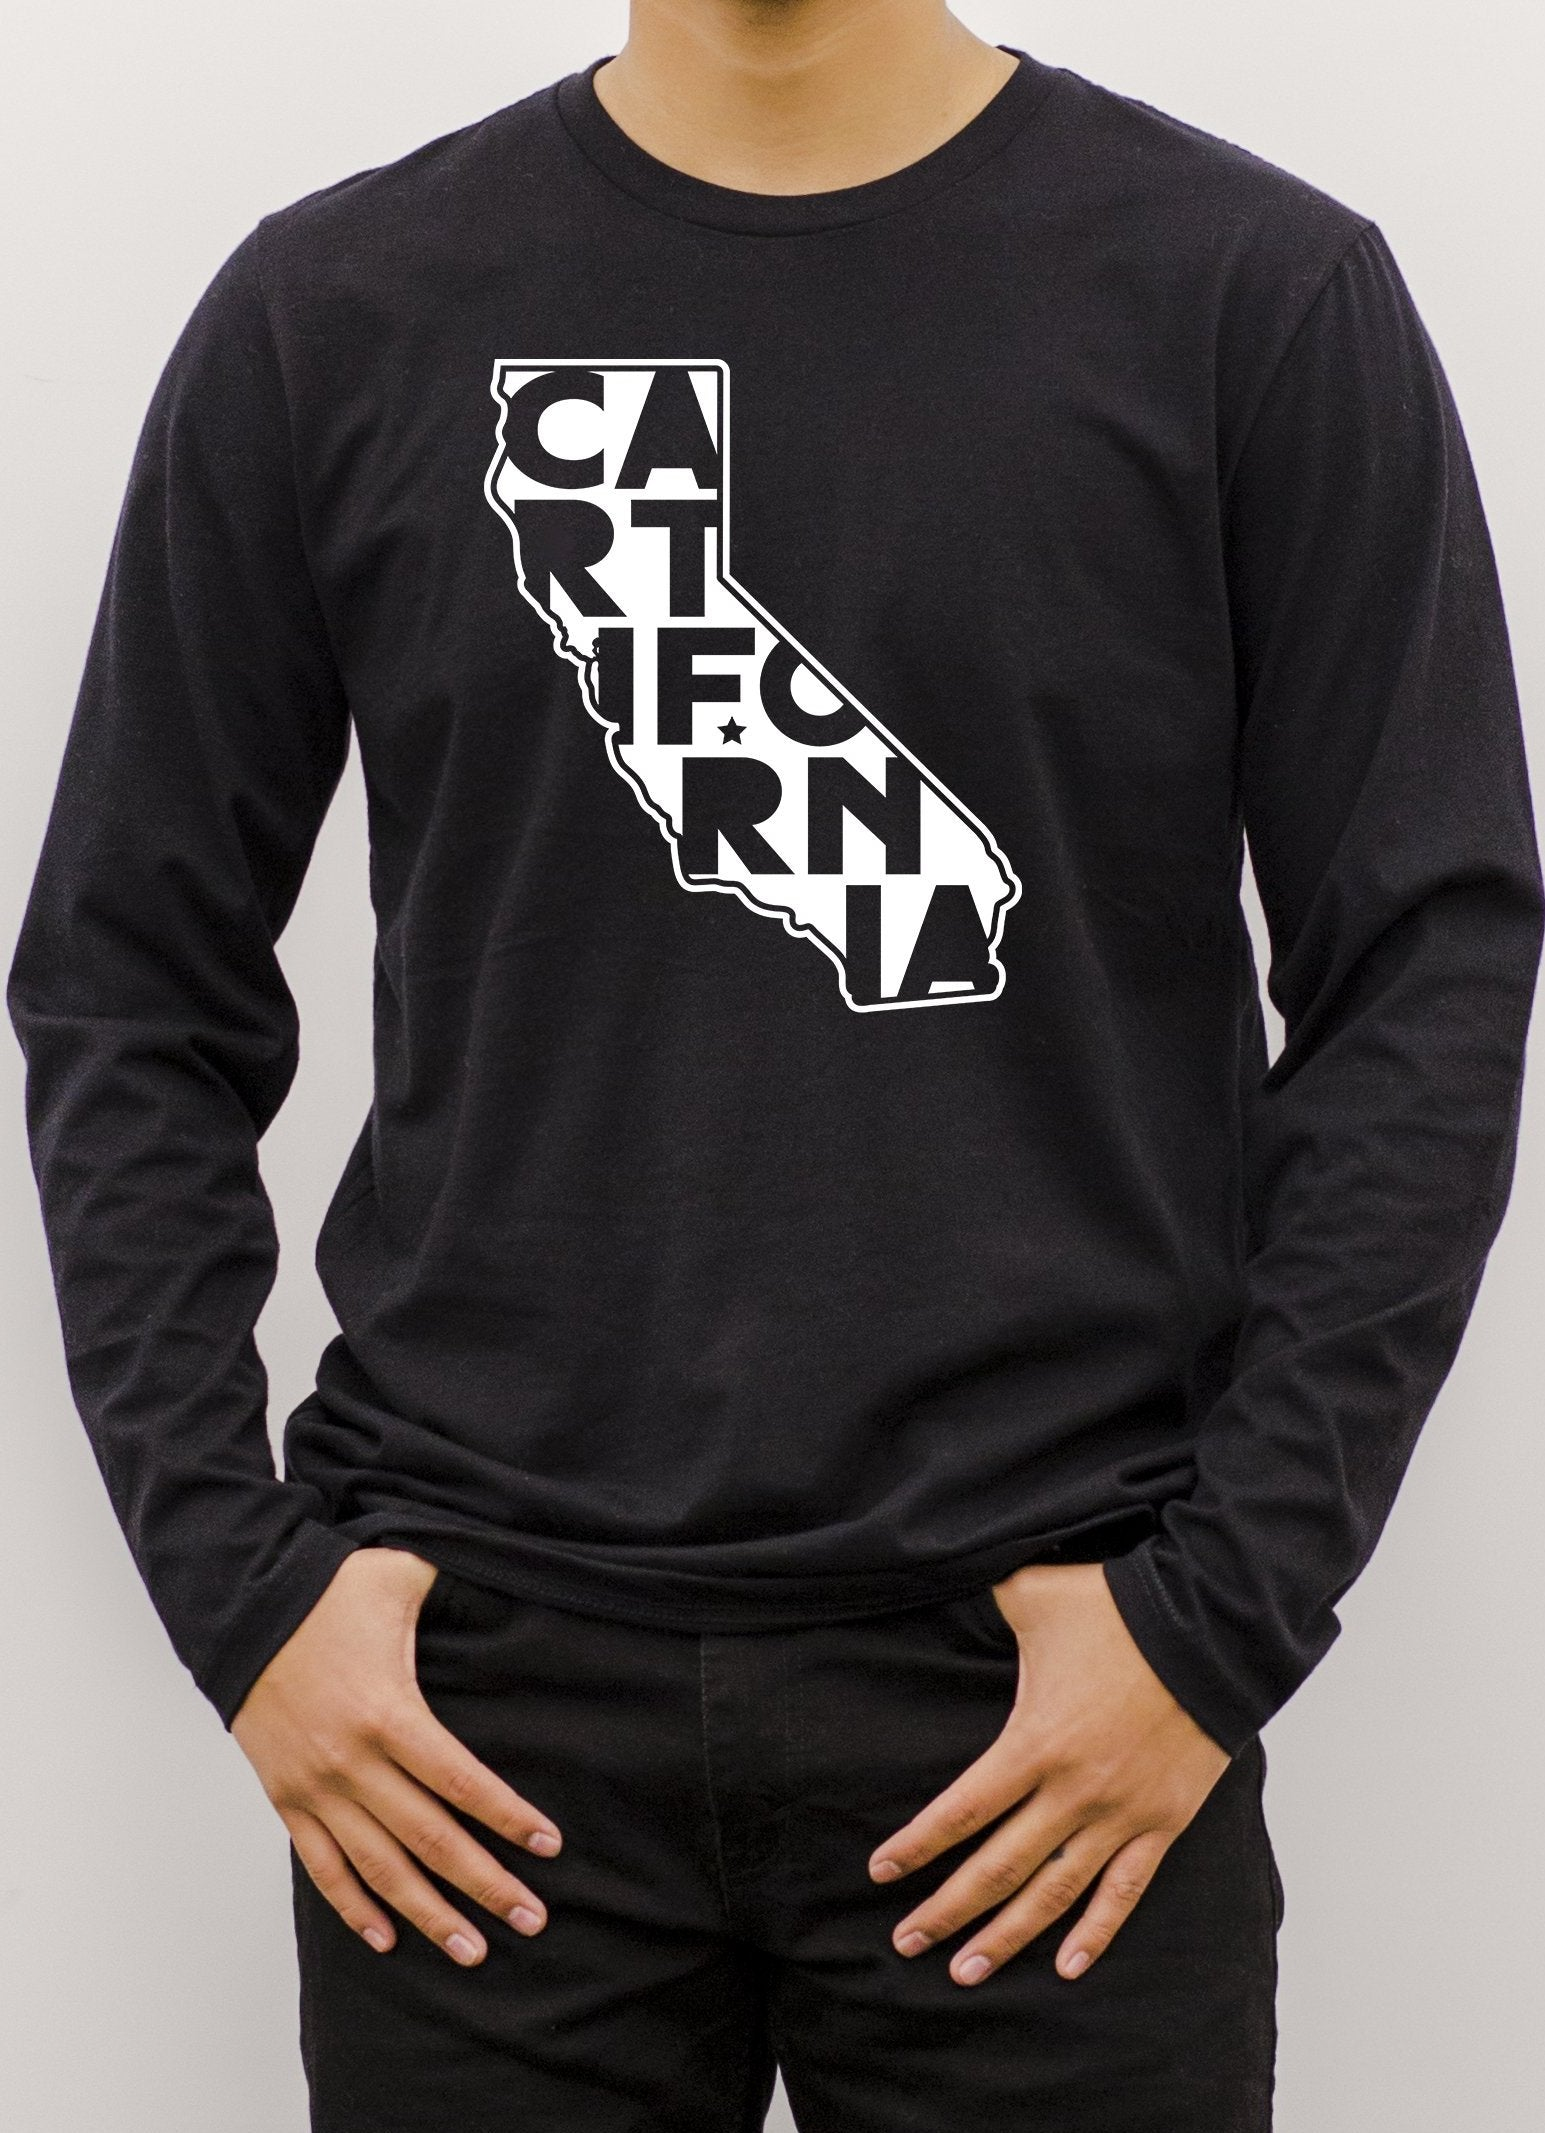 Long Sleeve T-Shirt - CARTifornia Colorful / Unisex Fit